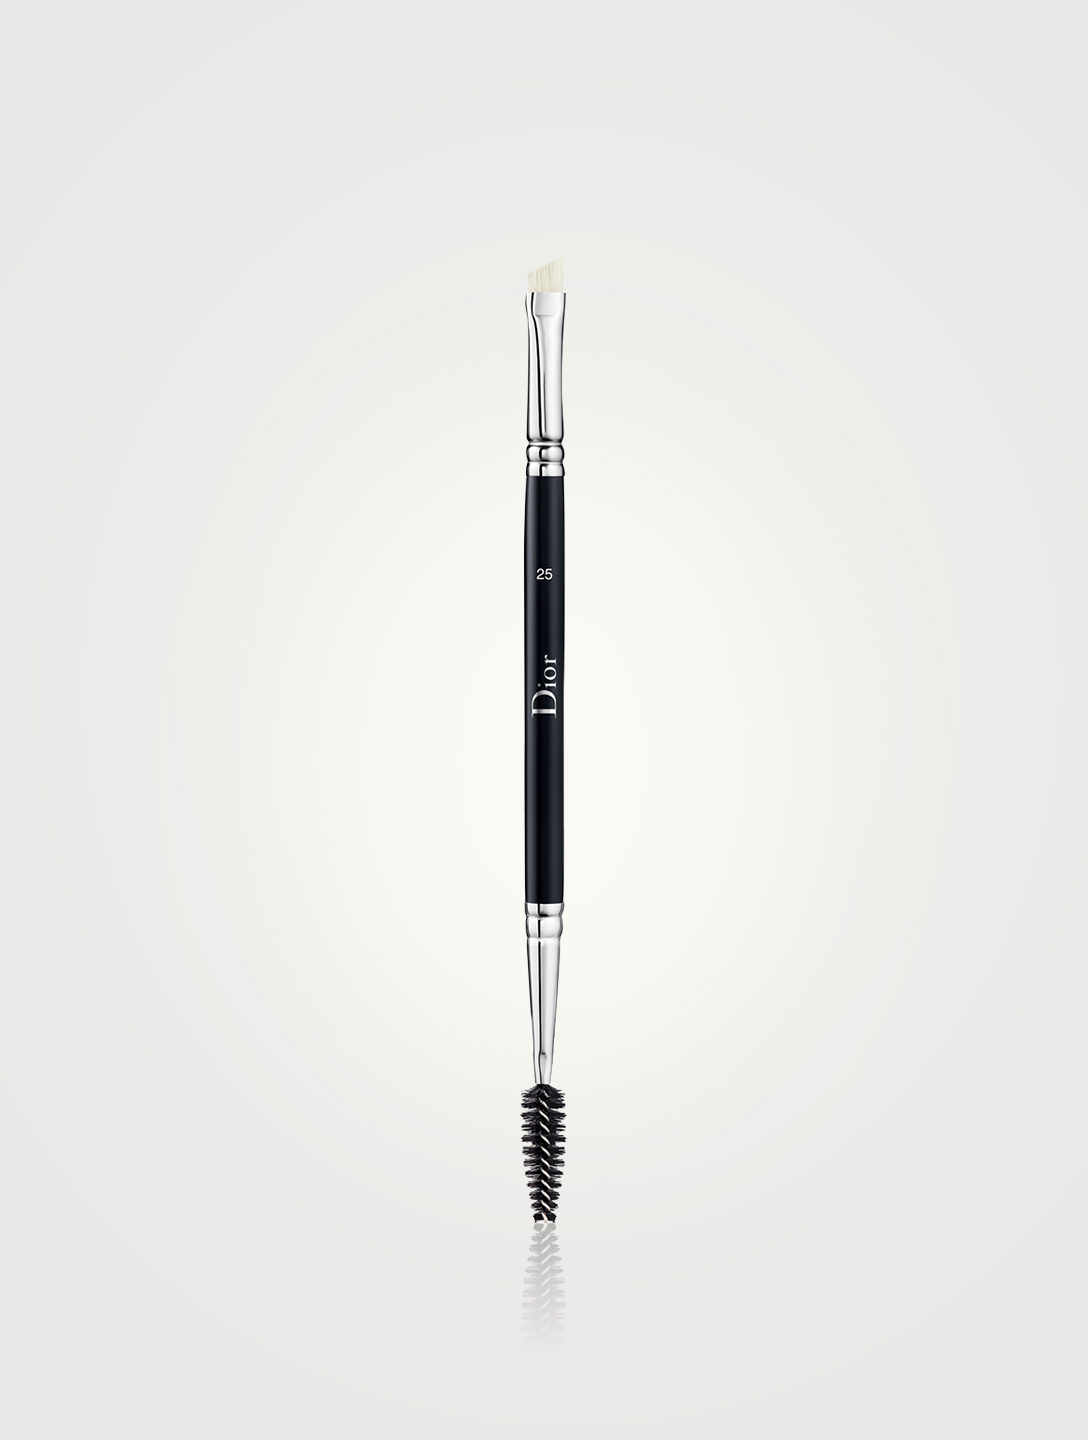 DIOR Dior Backstage Double Ended Brow Brush N° 25 Beauty